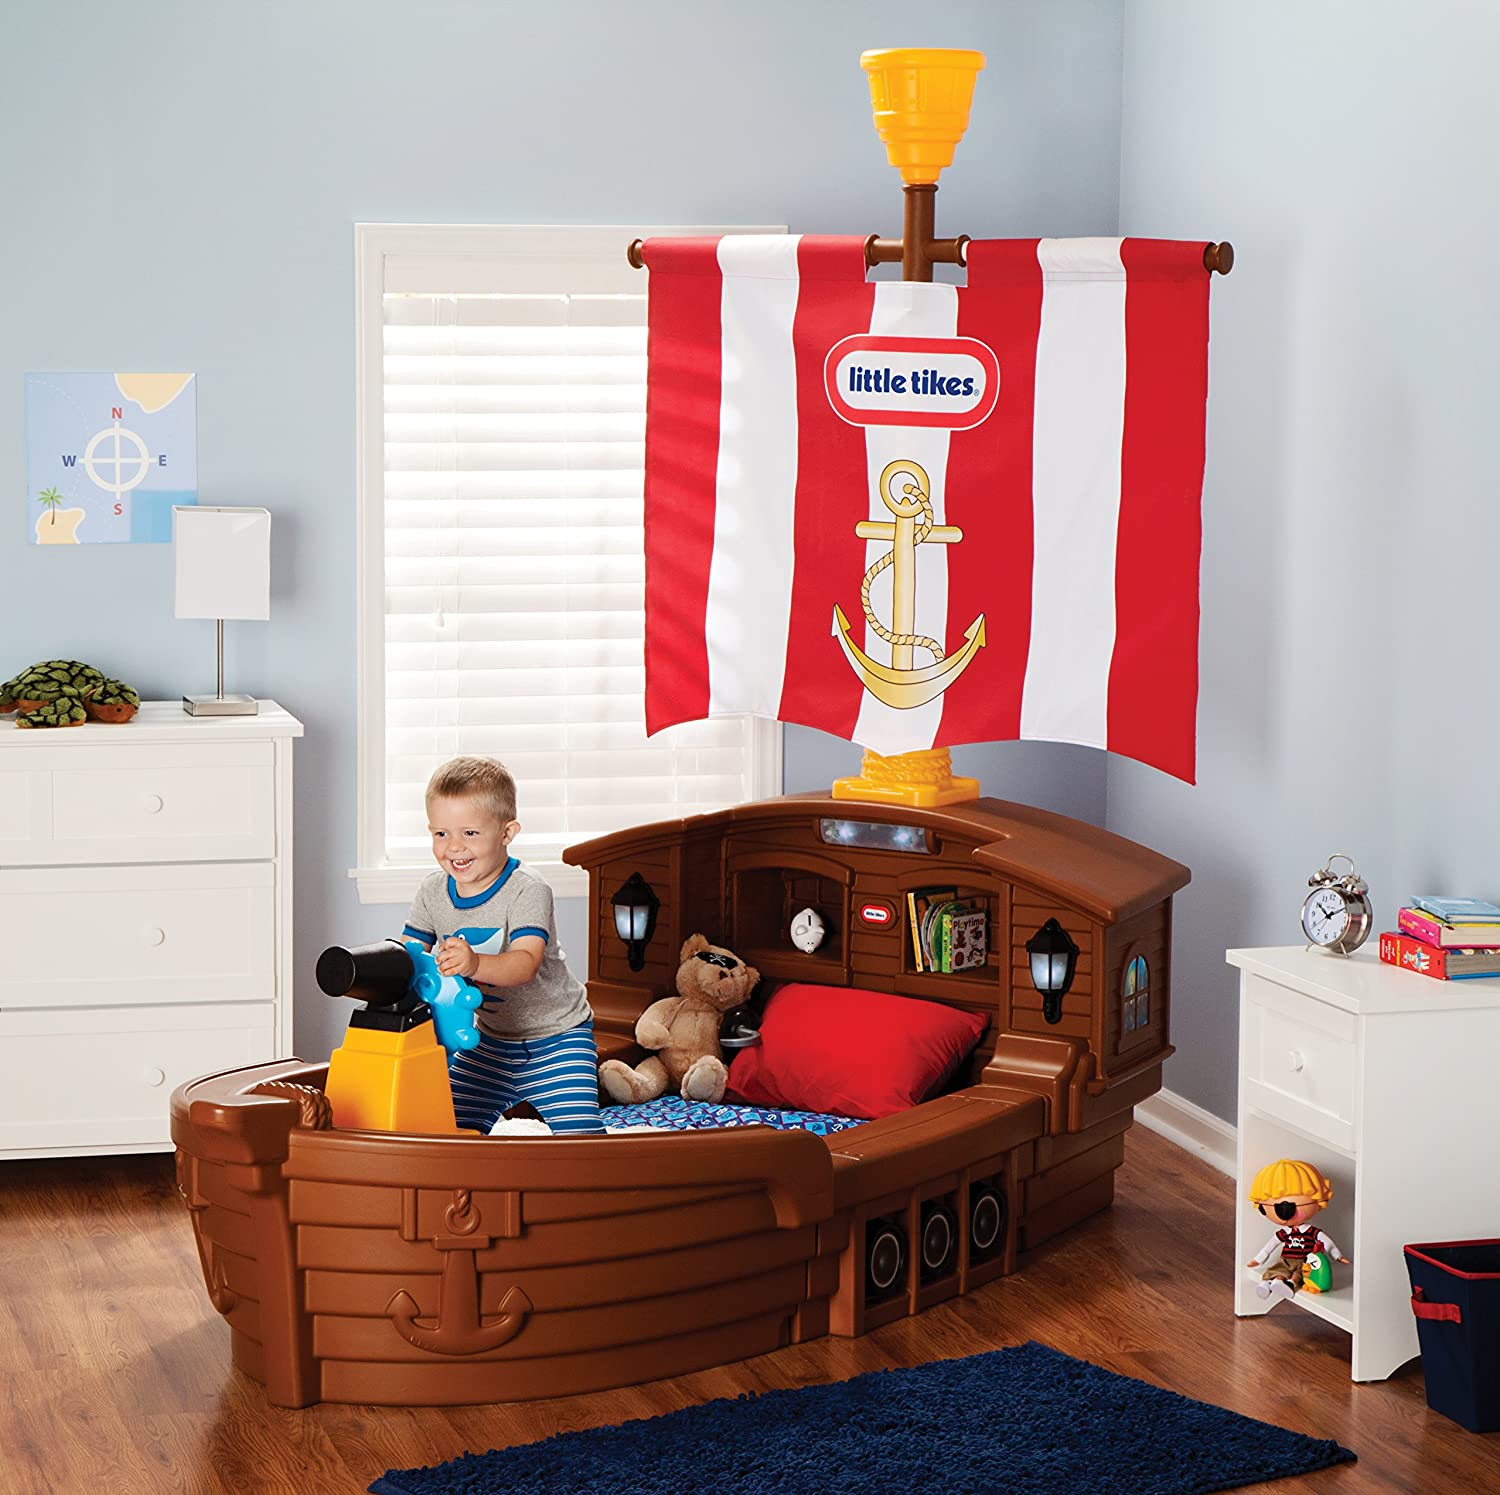 Amazon Little Tikes Pirate Ship Toddler Bed Toys & Games